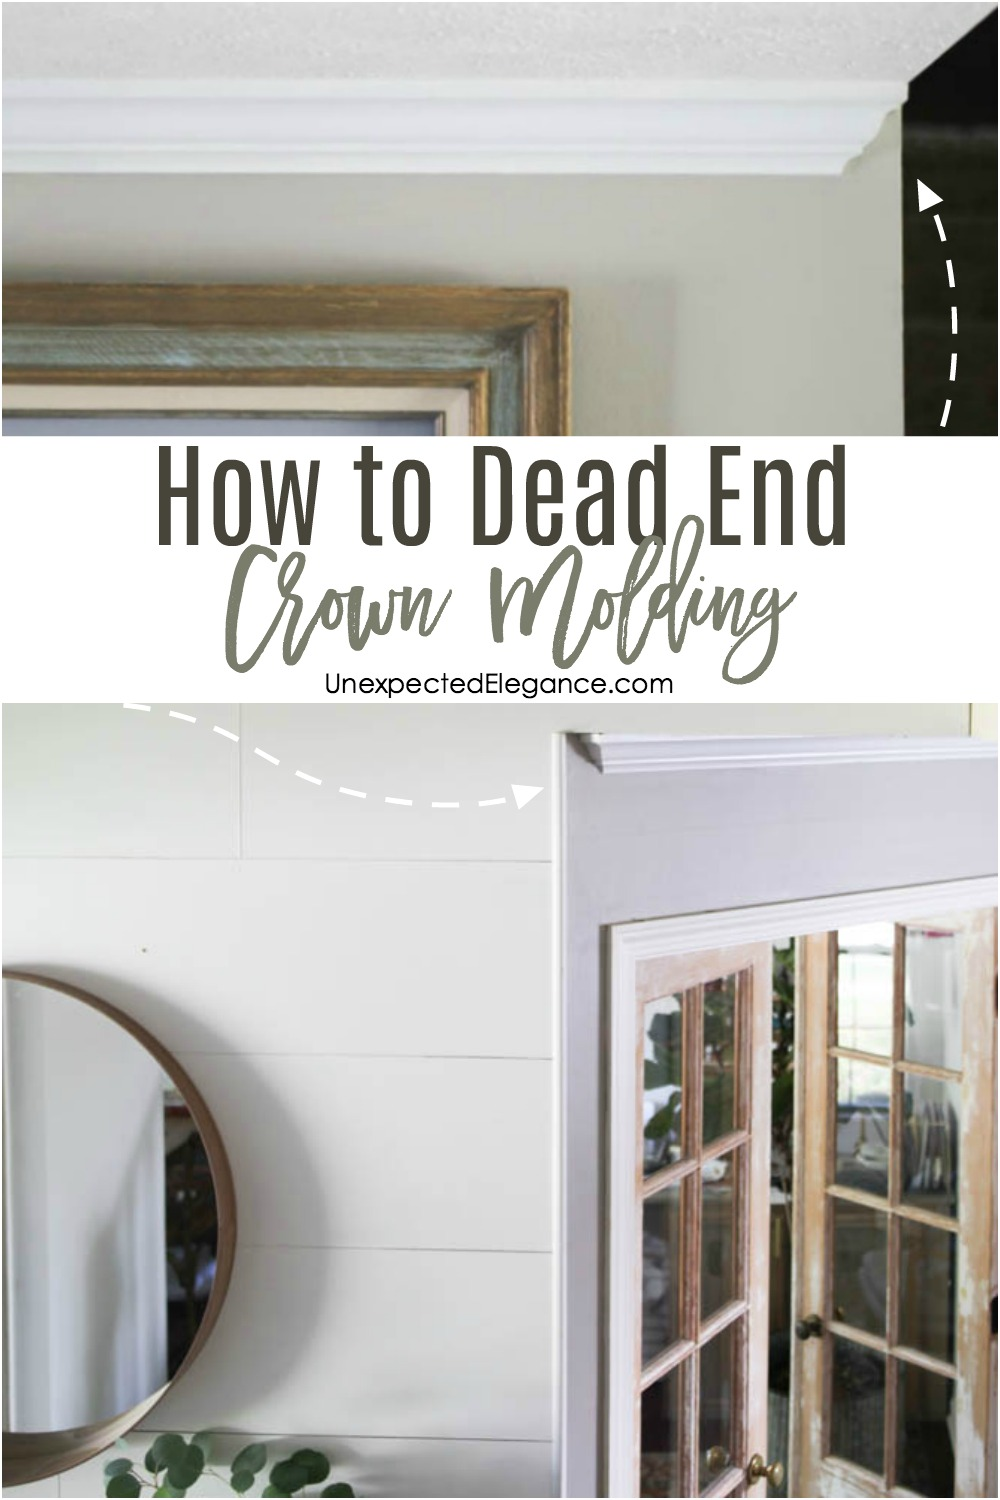 How to Dead End Crown Molding - Unexpected Elegance